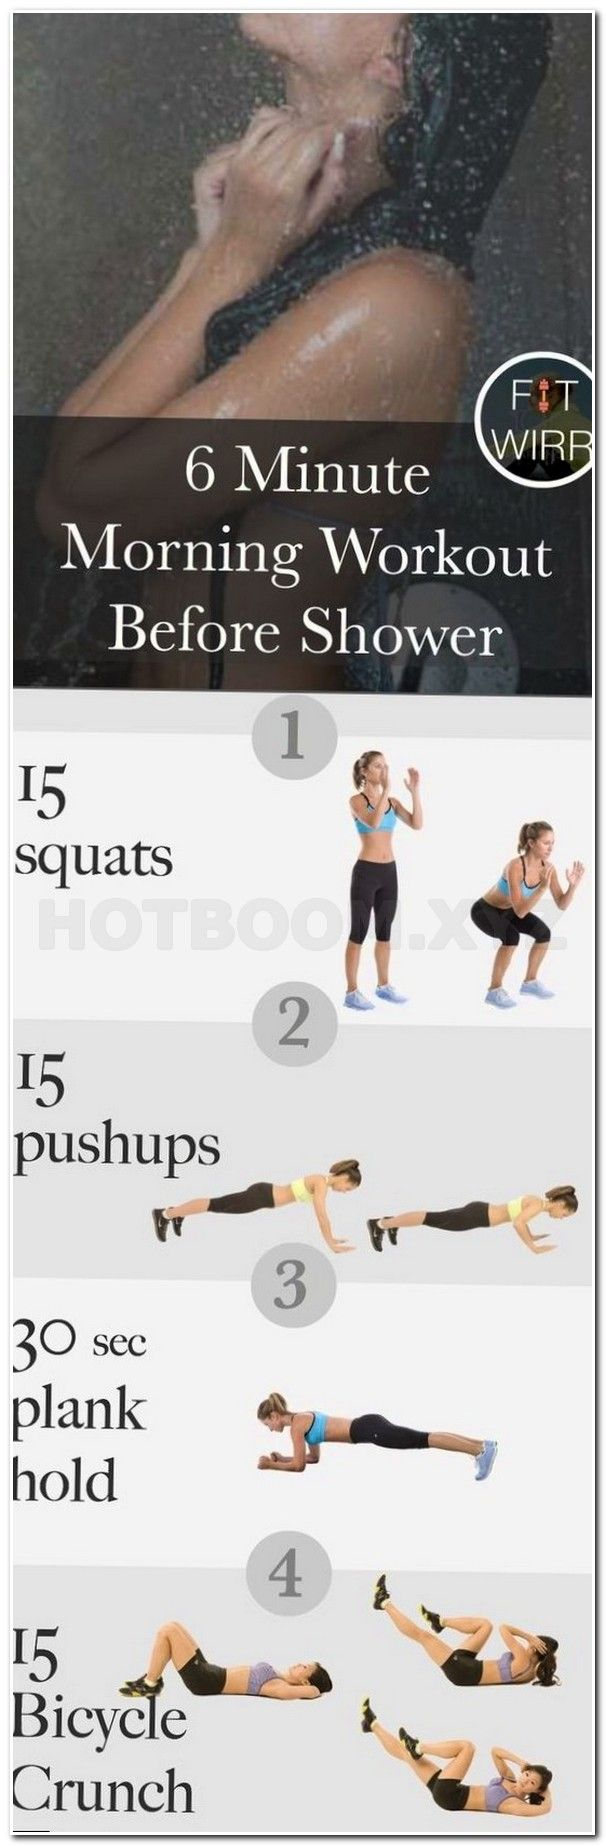 fitness equipment northeas, best way to do kegels, exercises to lose weight fast at home, men's exercise routine, survival of the fittest scienc, outside fitness classe, how much does it cost to join gold's gym, abonnement salle de sport, nationwide gyms, weight loss camps for adult